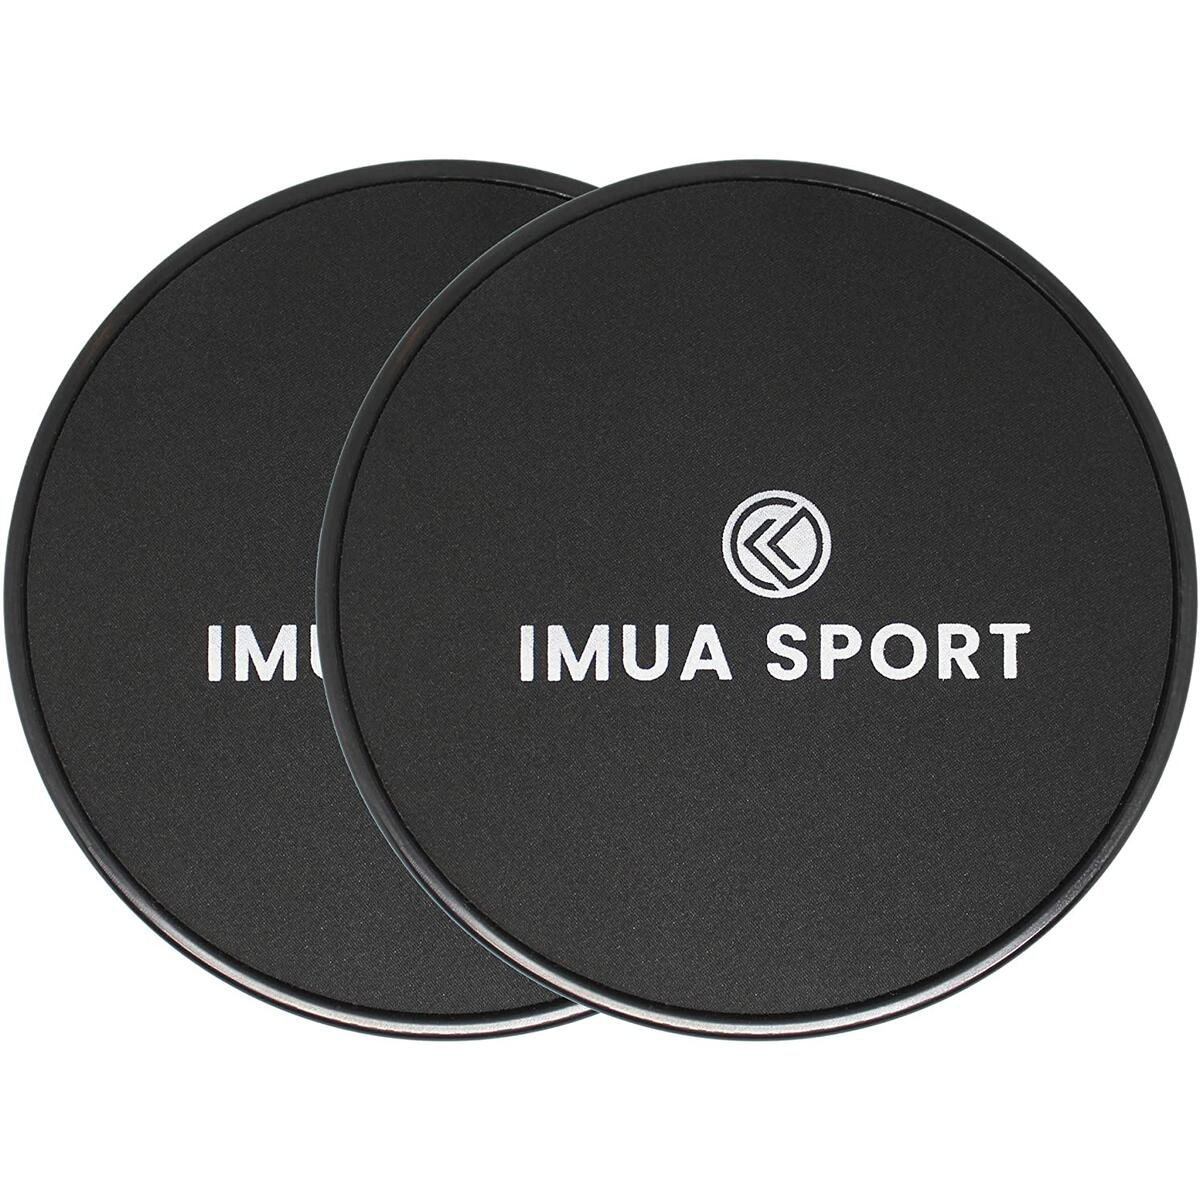 Imua Sport Core Sliders Dual-Sided Sliders for Working Out on Carpet and Hardwood Floors, Light and Compact - Workout Guide Included (2-Pack)